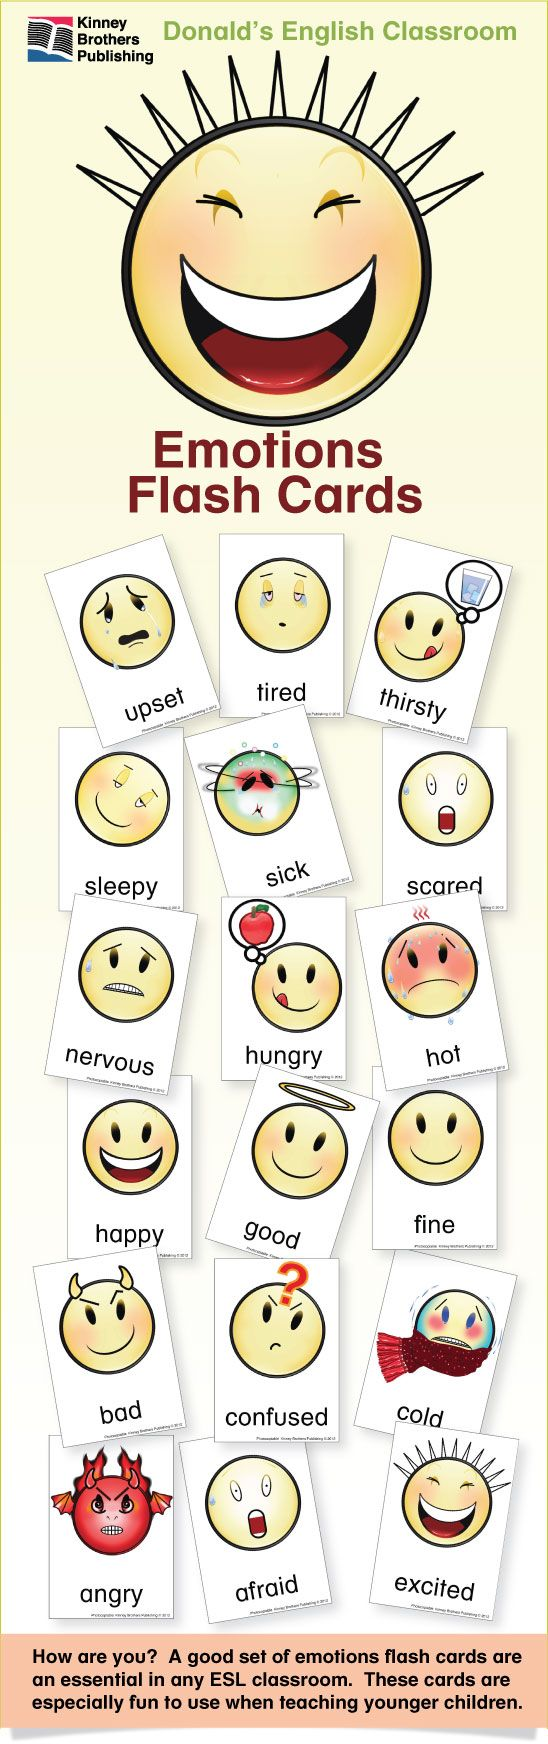 How are you? A good set of emotions flash cards are an essential in any ESL classroom. These emoticon-style flash cards a especially fun to use when teaching younger children.